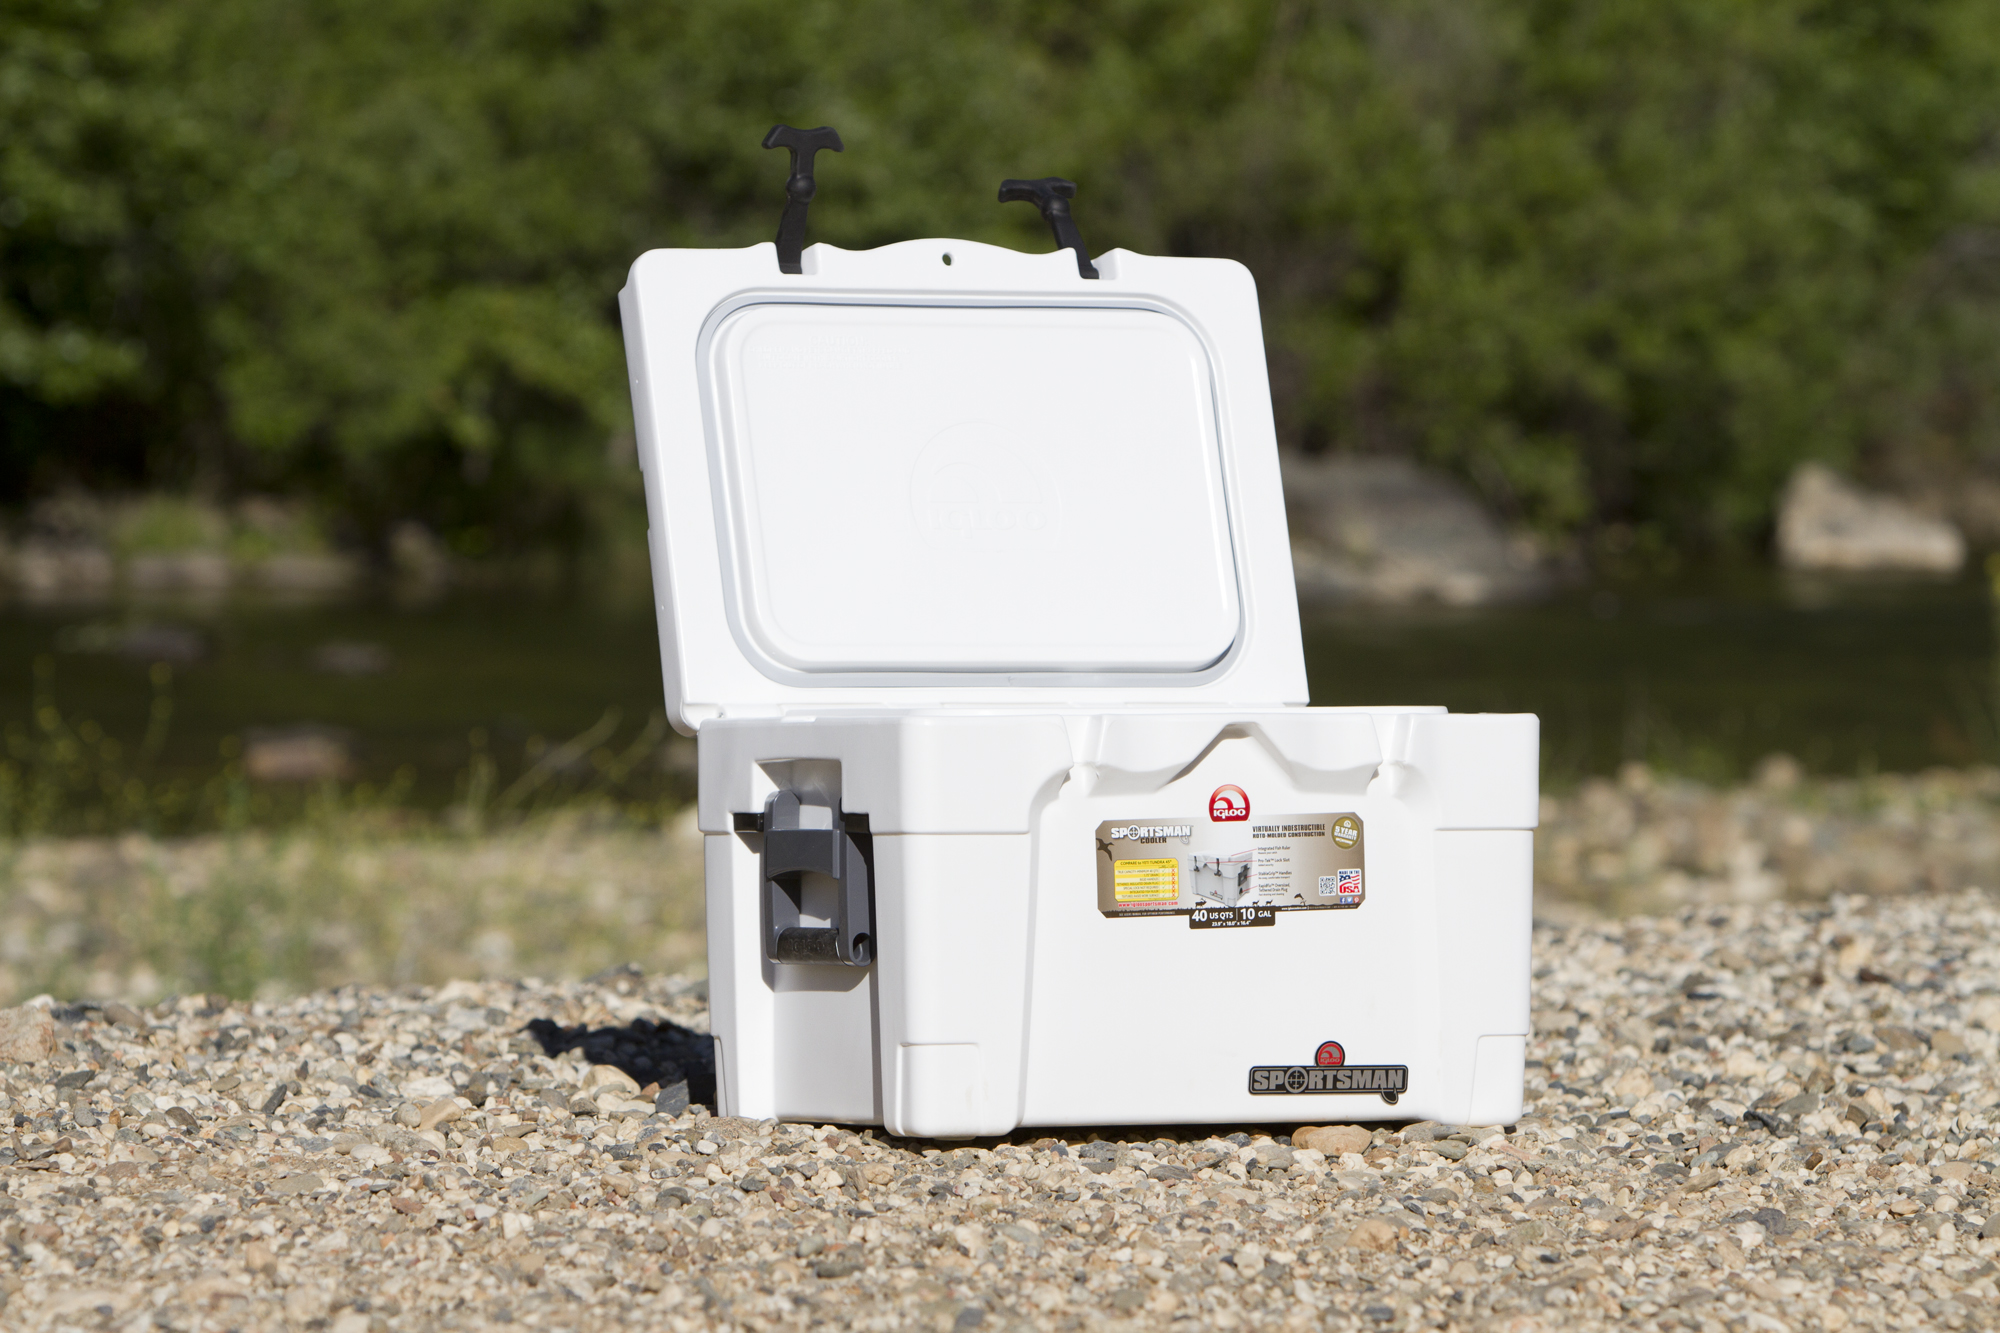 15Fall_Coolers - Igloo Sportsman 40 - 002